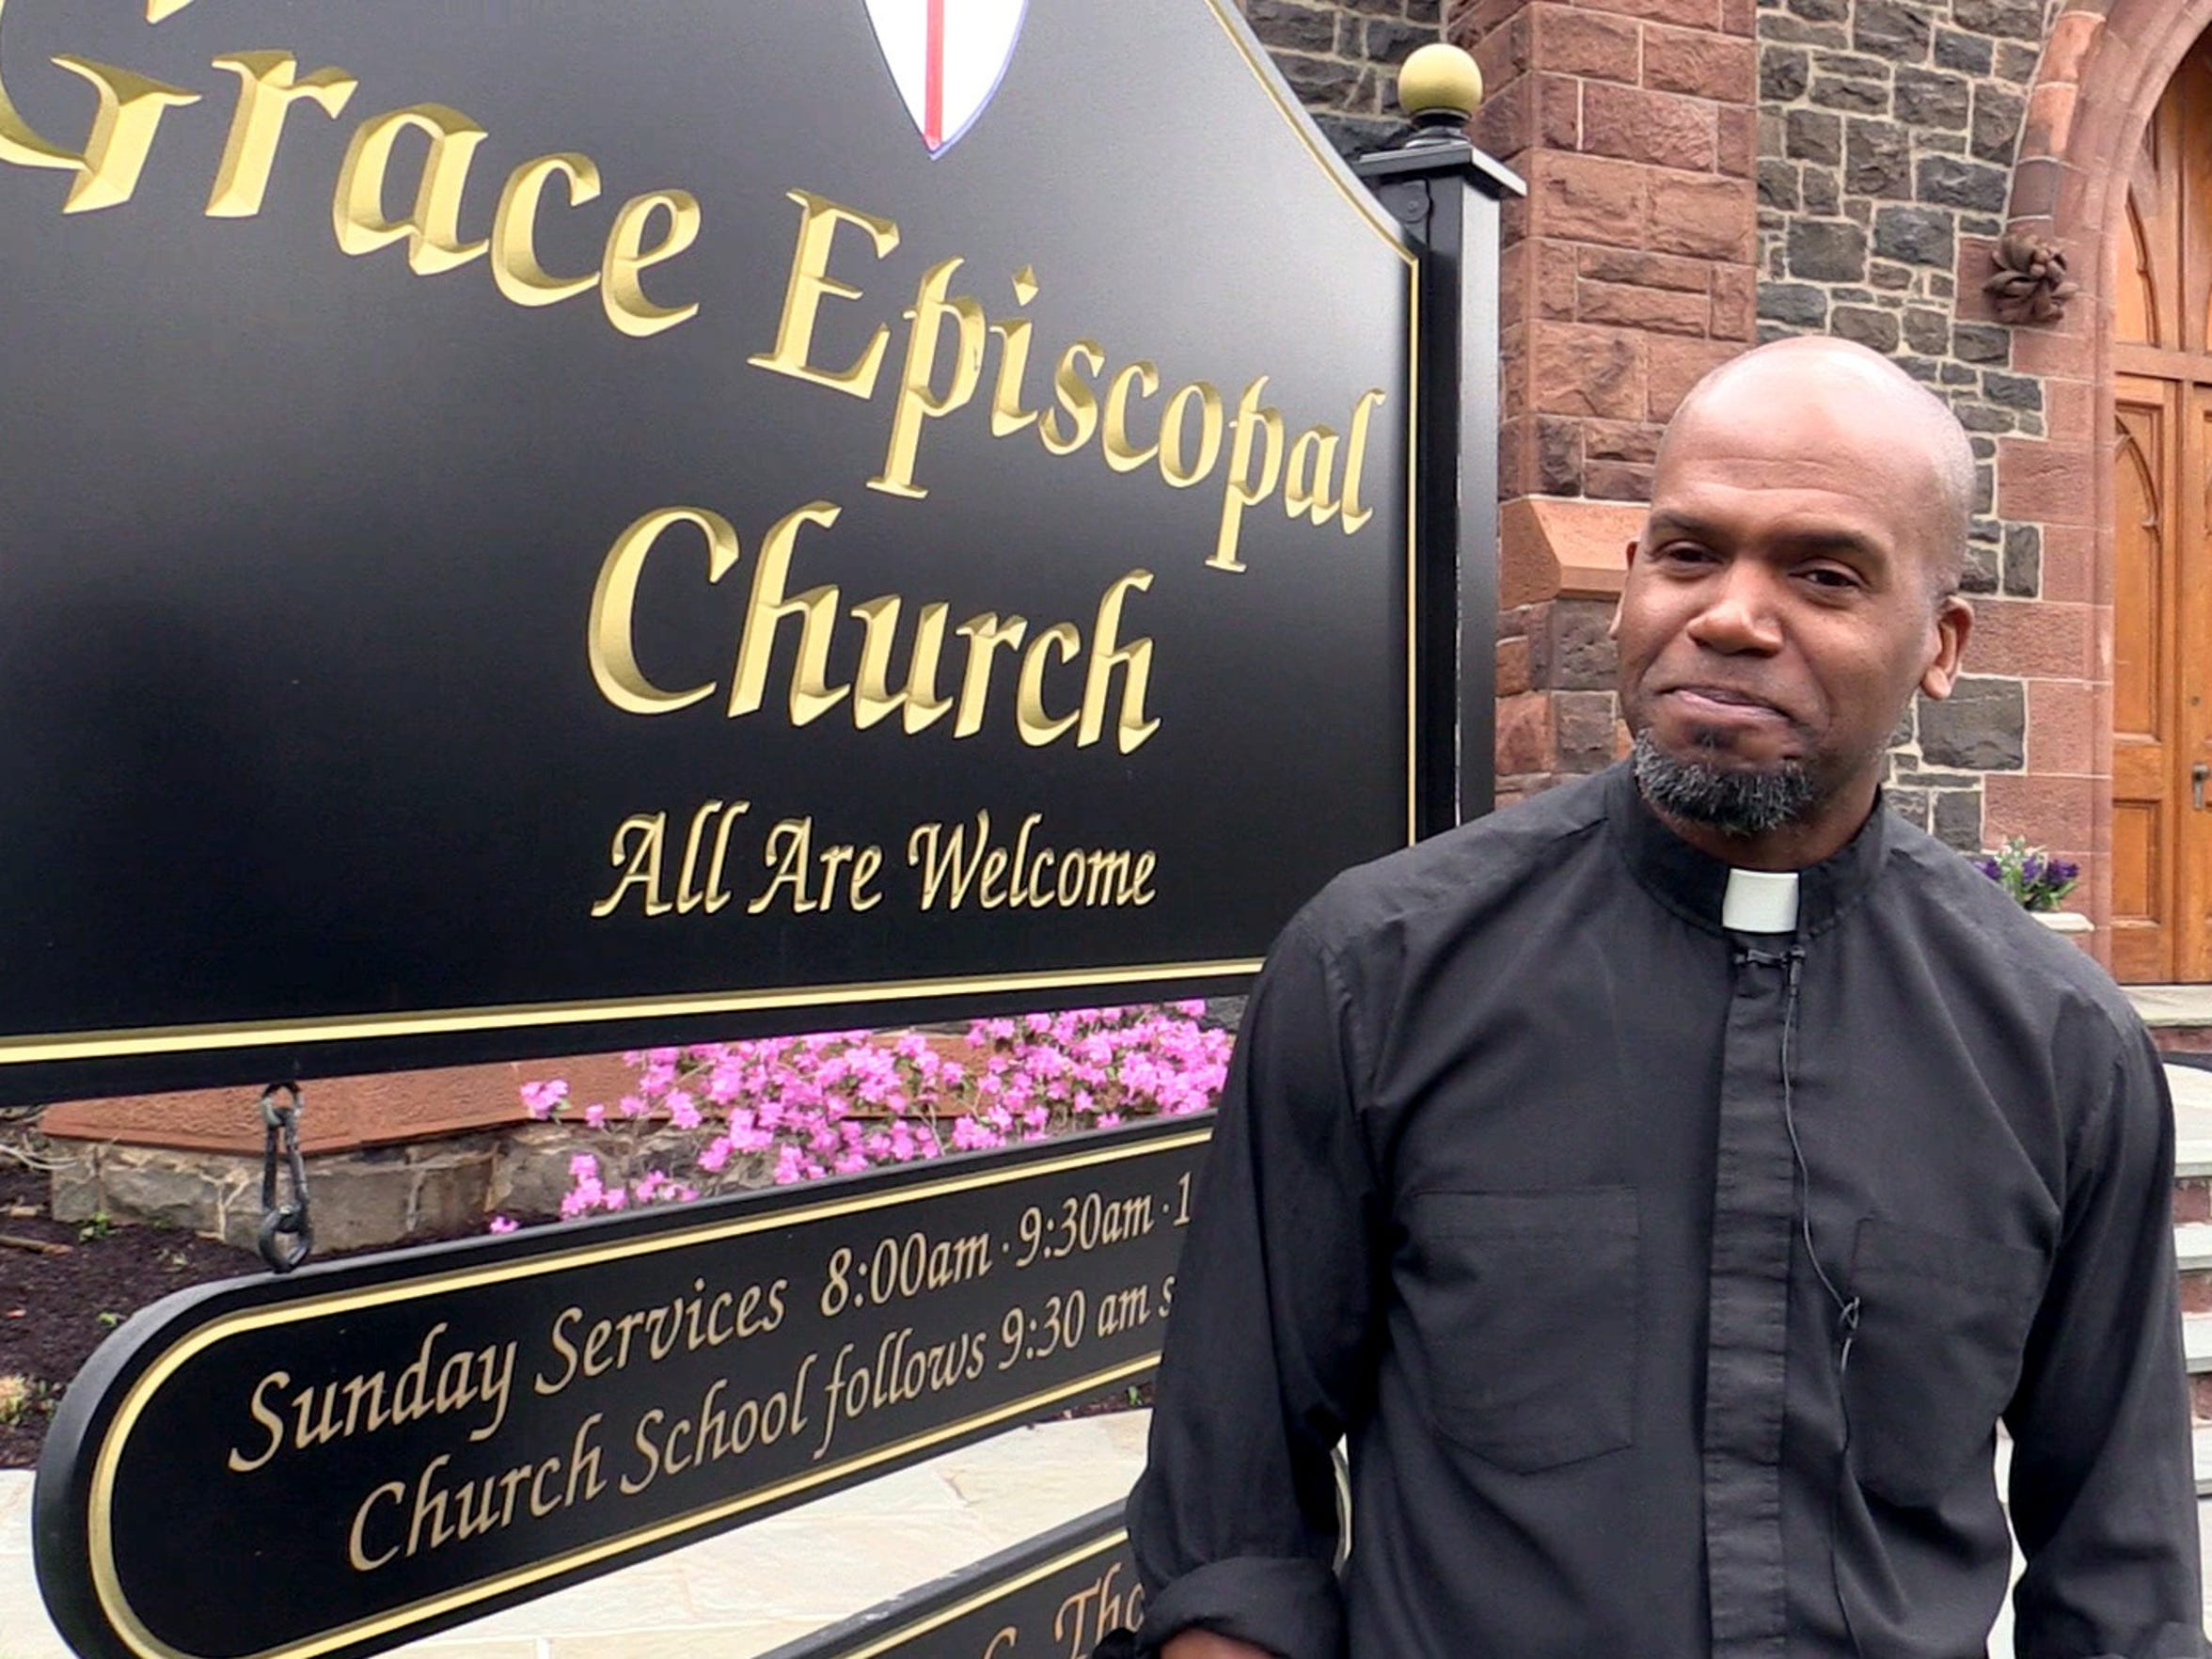 The Rev. Owen Thompson has been the pastor at Grace